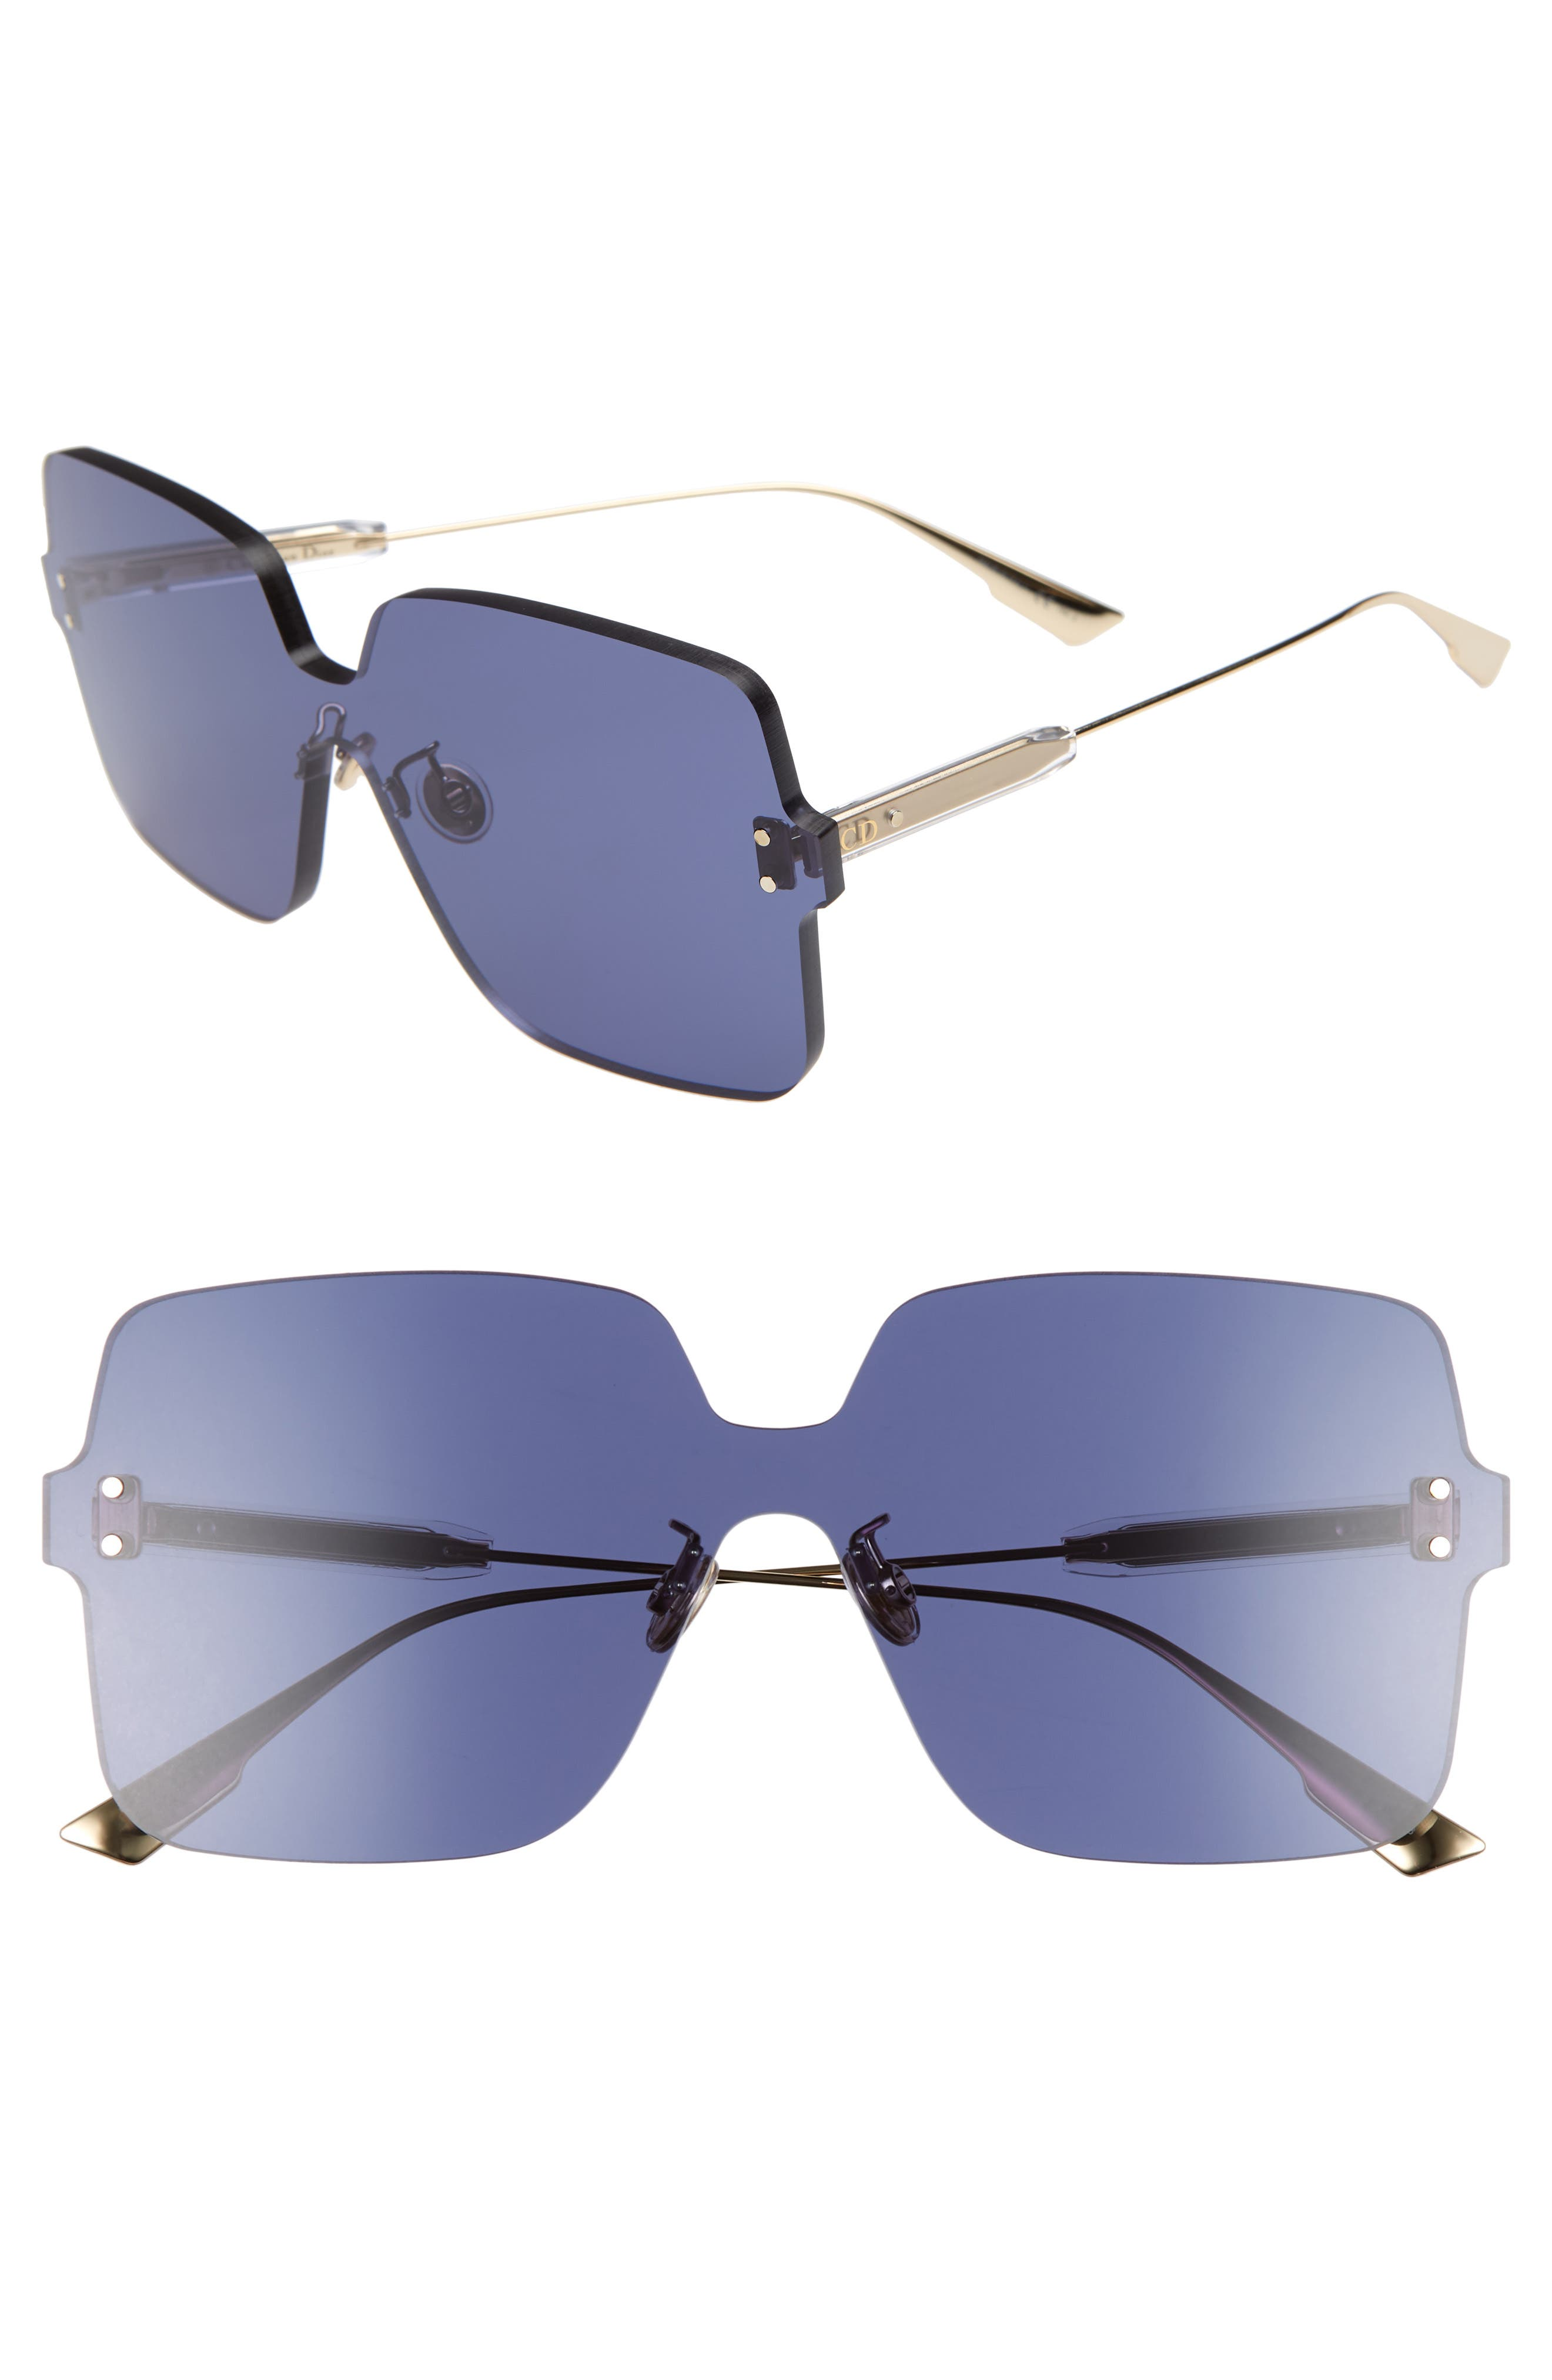 Christian Dior Quake1 147Mm Square Rimless Shield Sunglasses - Blue